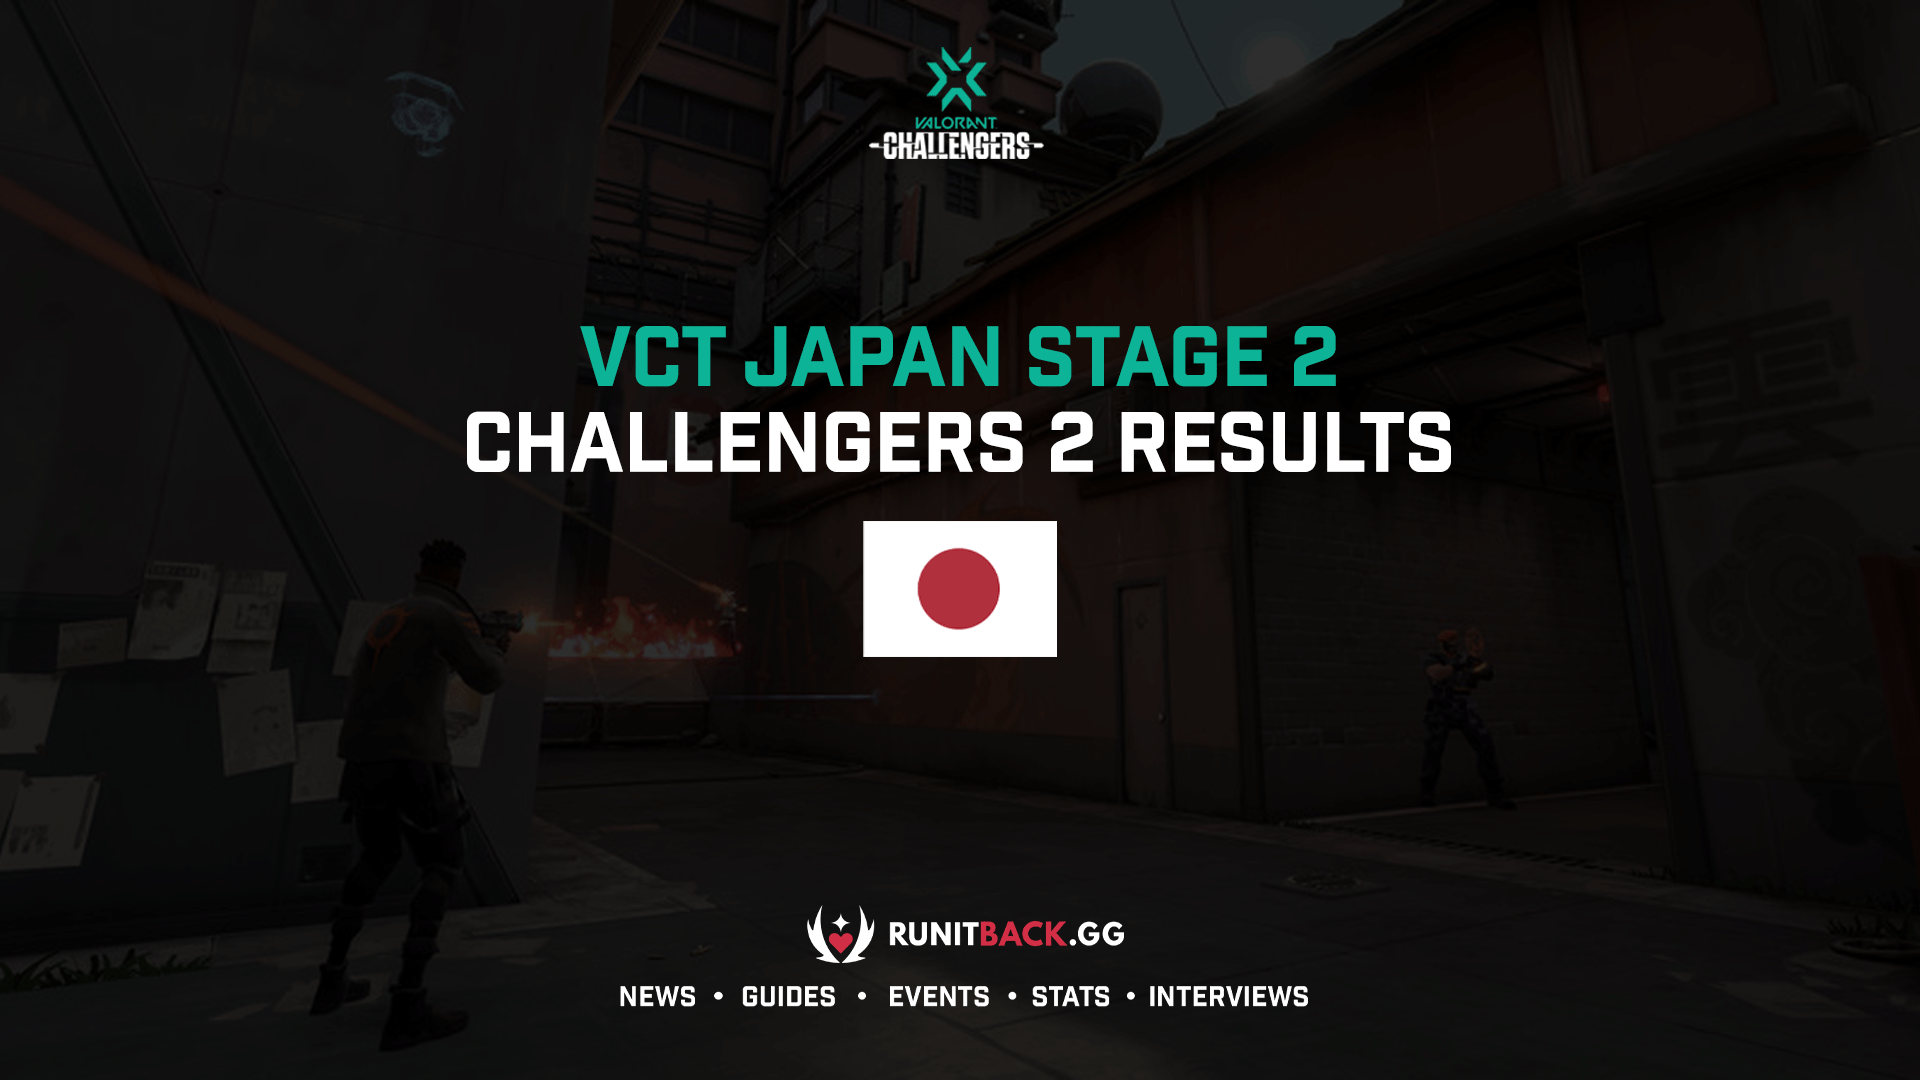 VCT Japan Stage 2 Challengers 2 Results